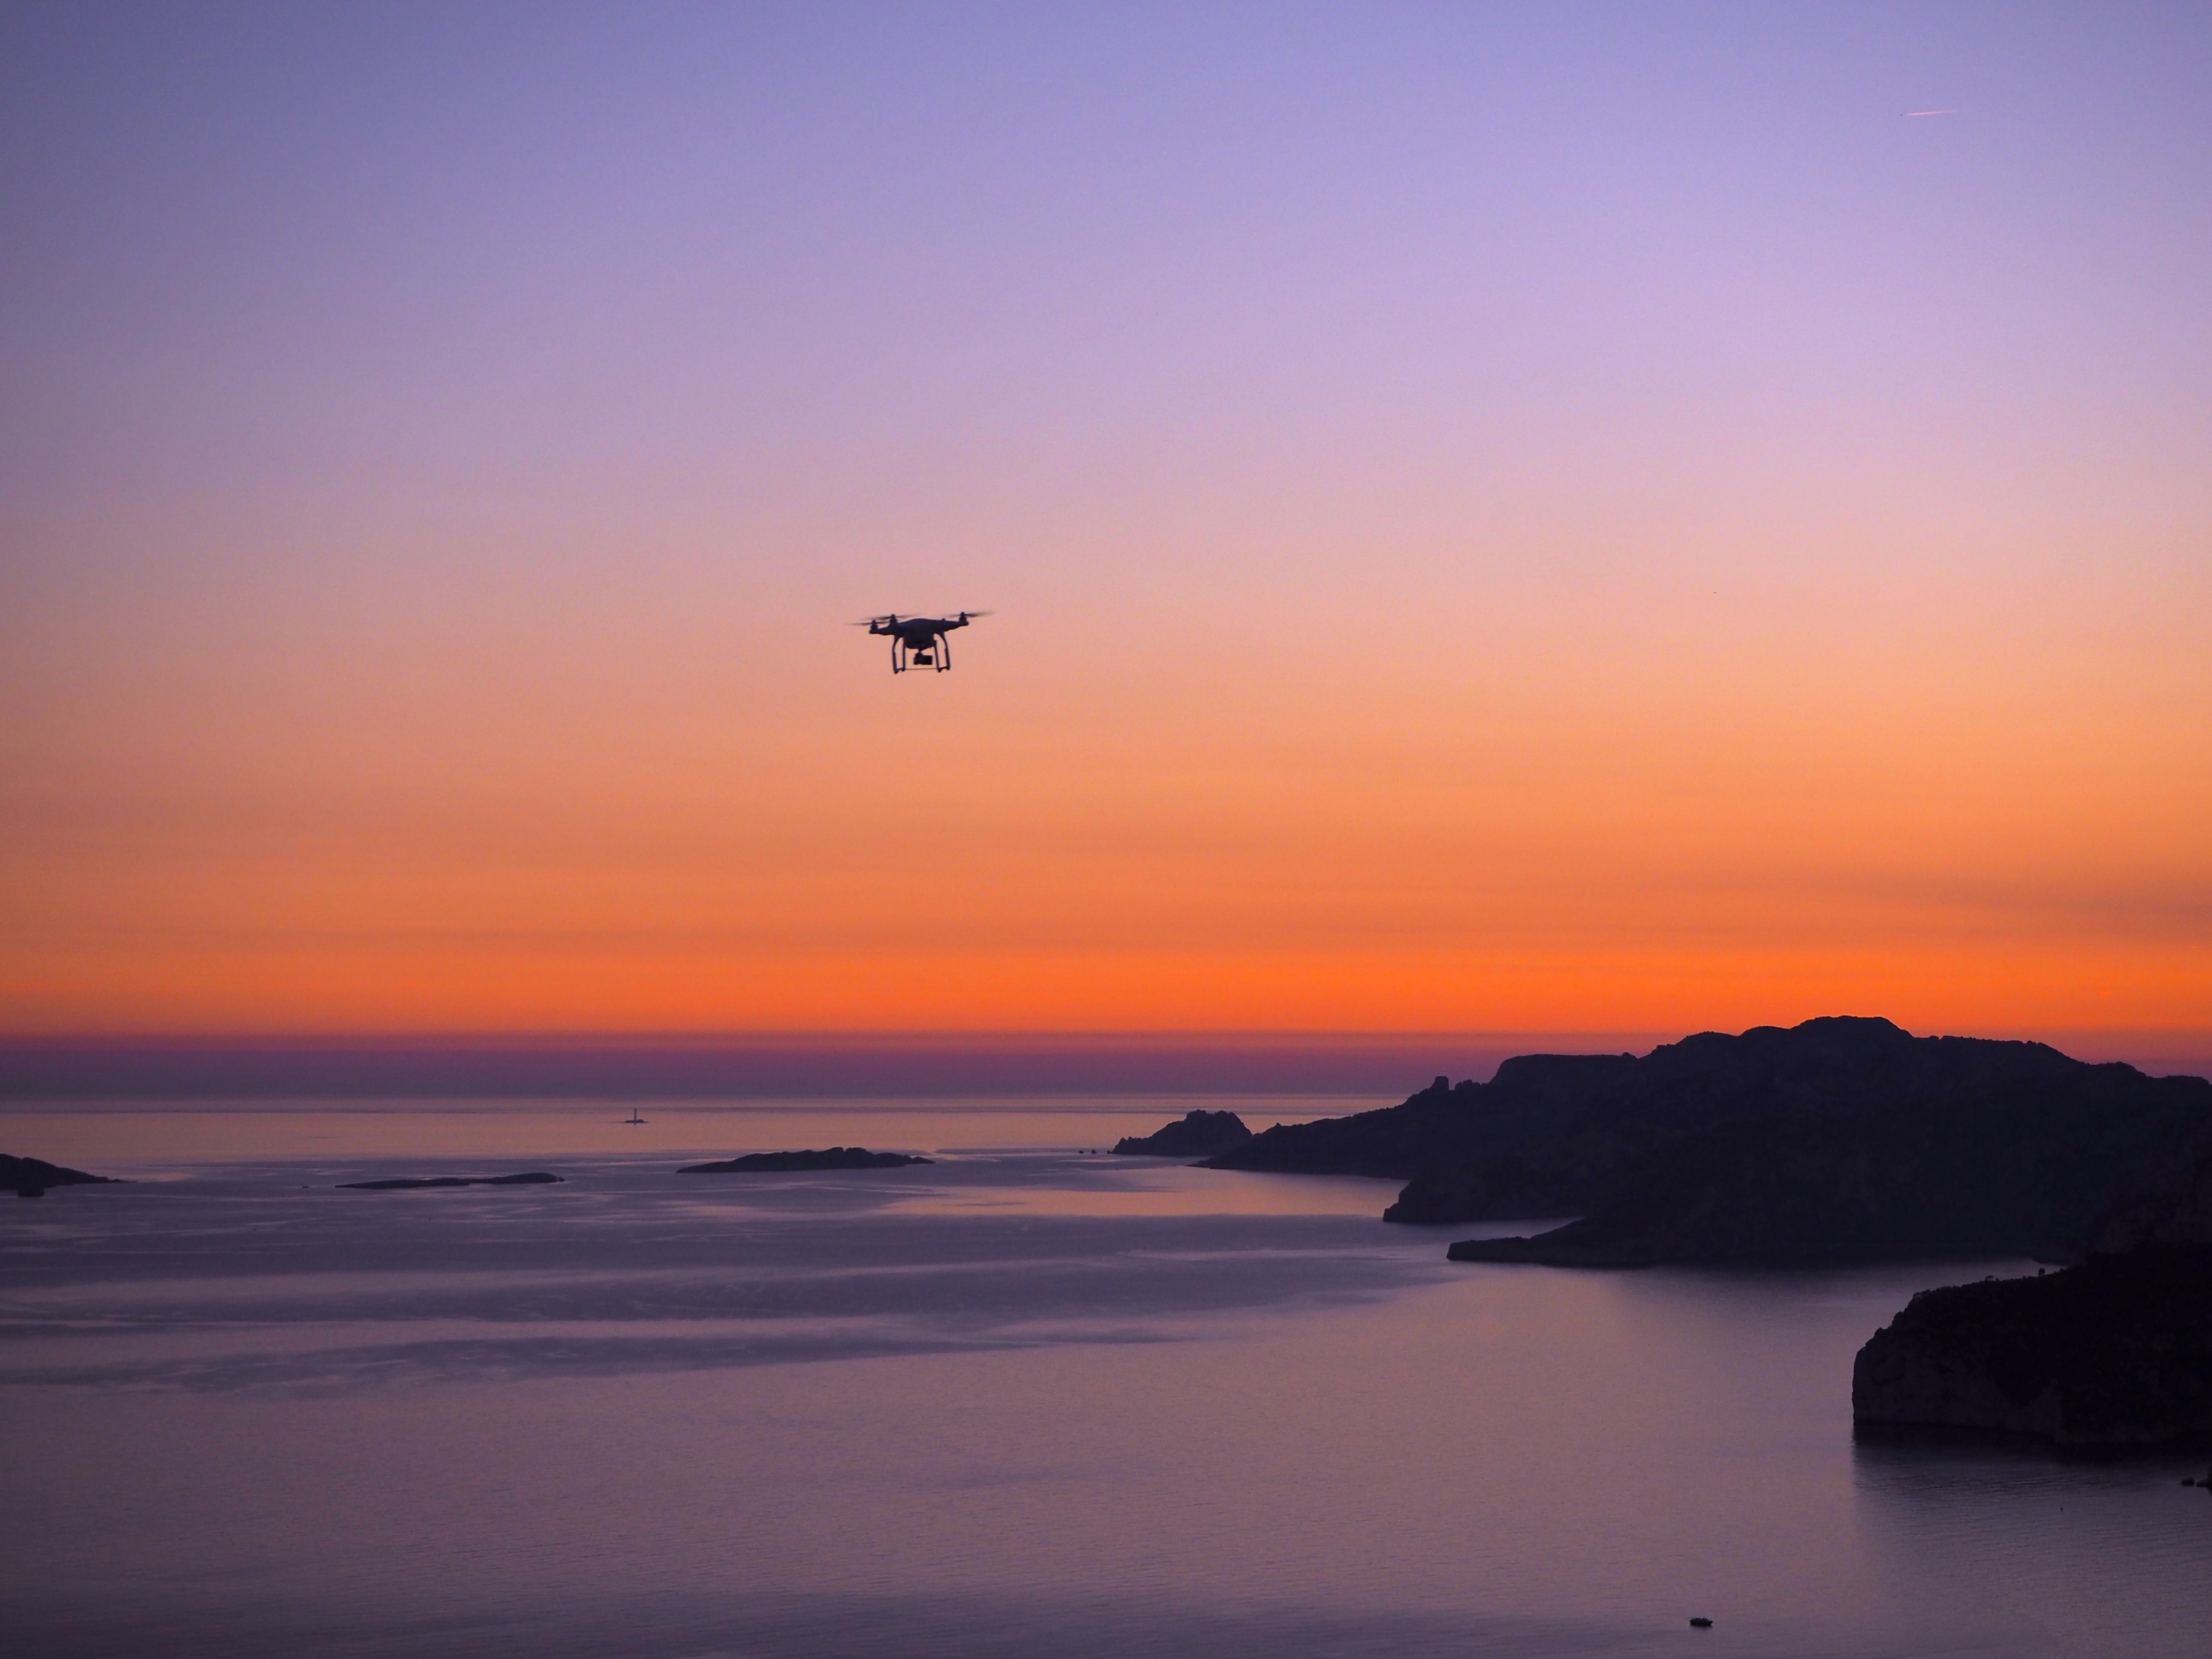 A drone hovering over the water and rocks of La Ciotat with an orange and purple sunset in the background